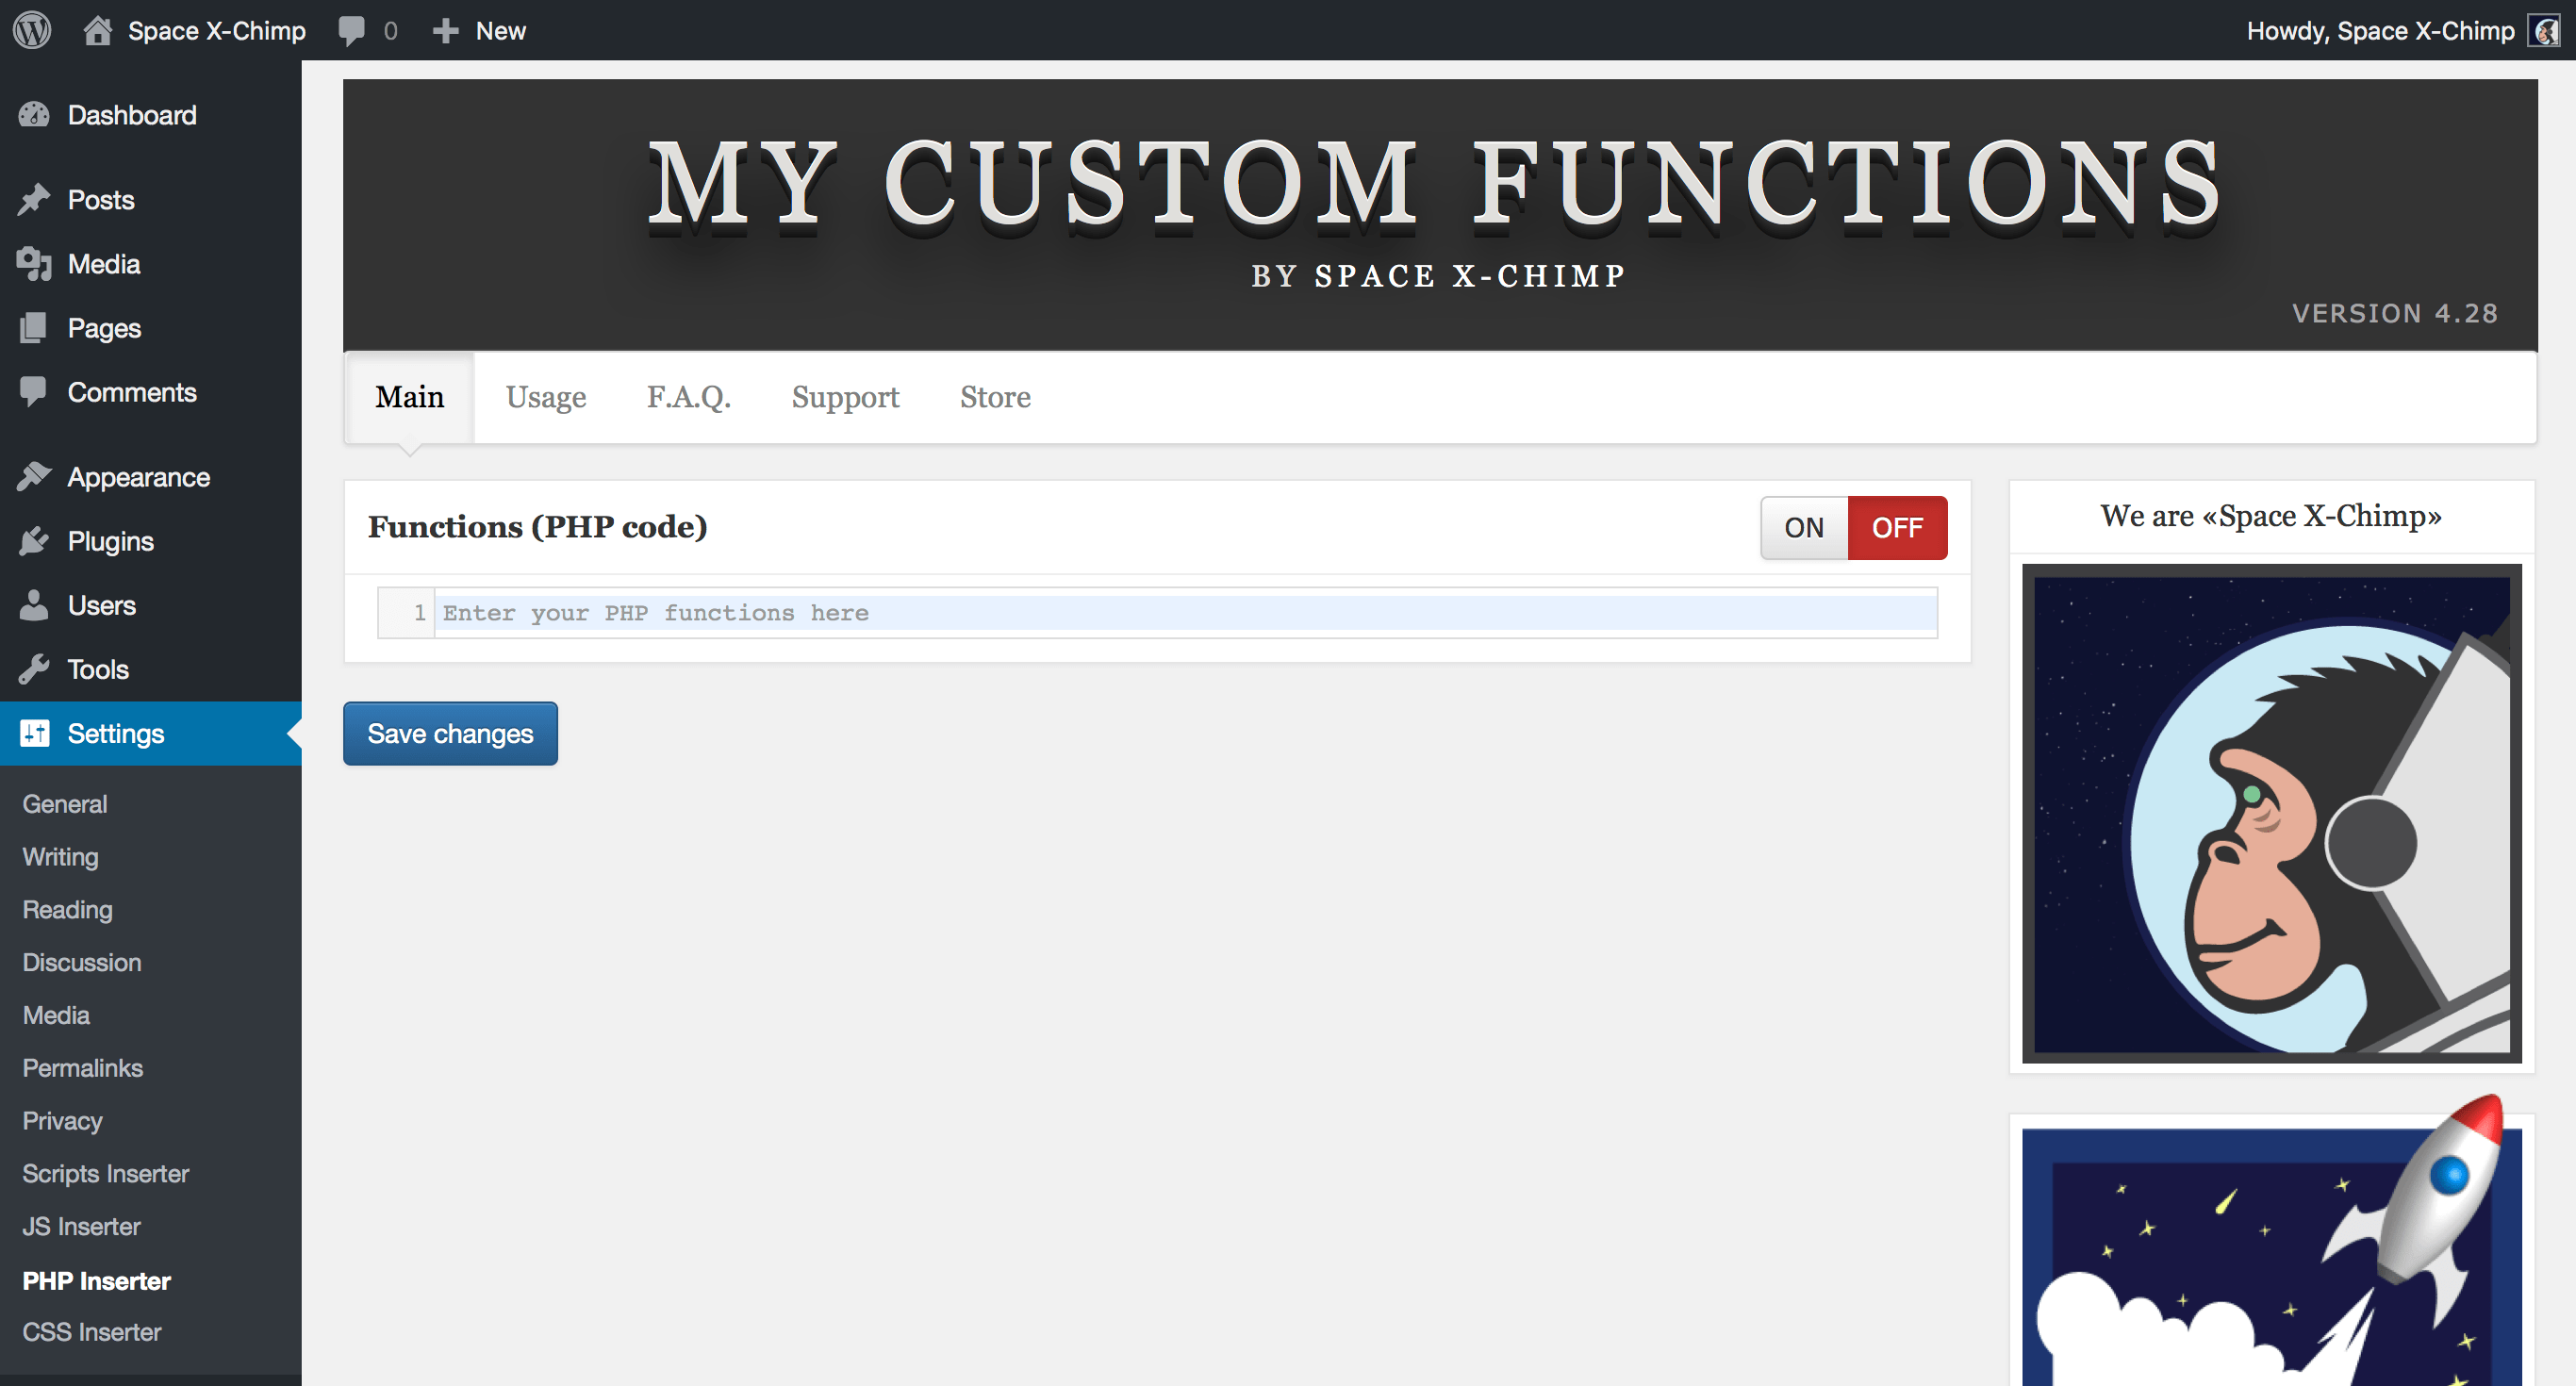 my-custom-functions screenshot 1